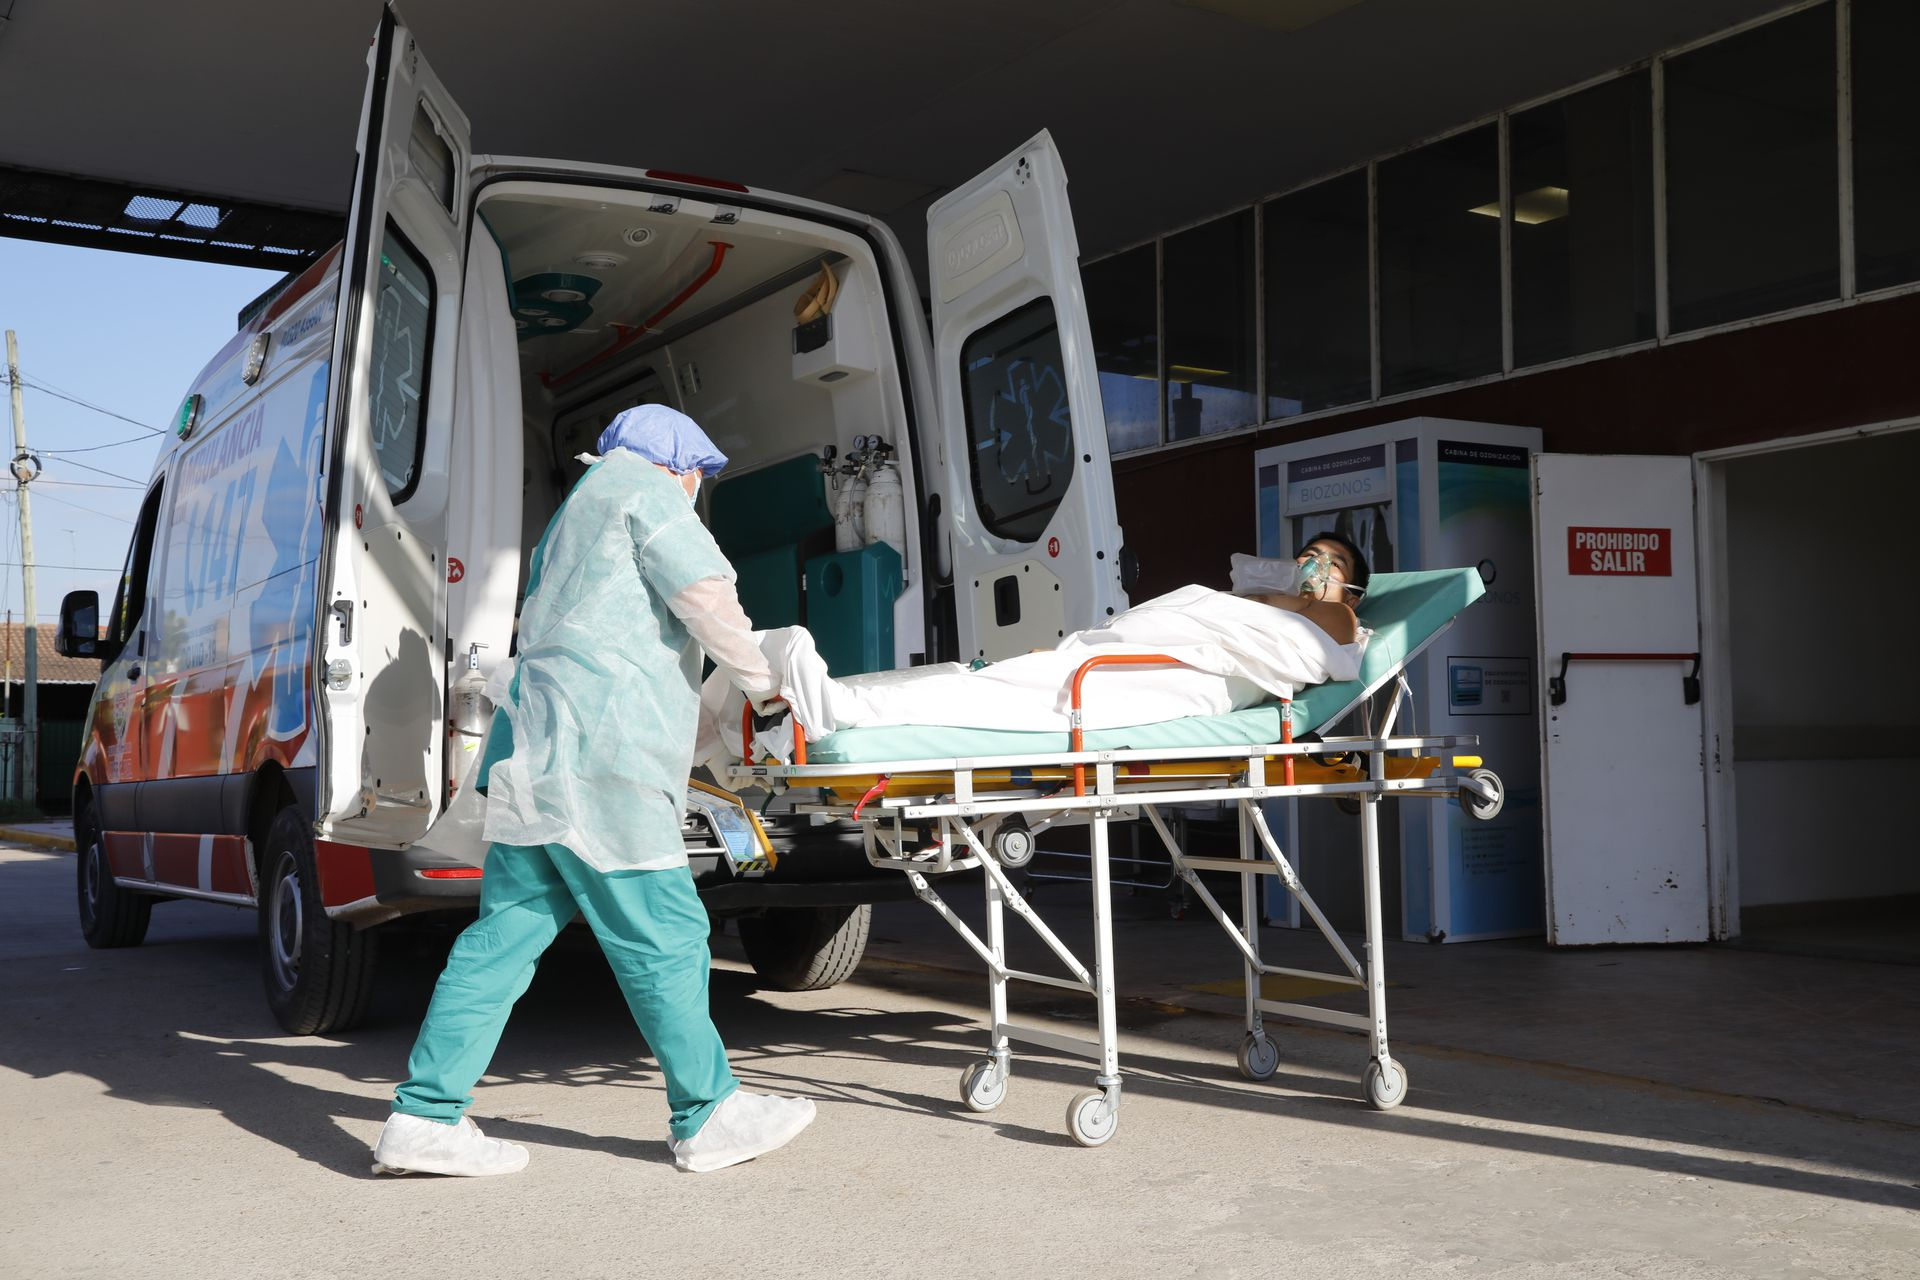 Augusto Spinola, who has been diagnosed with Covid-19, arrives in an ambulance after receiving a CT scan.  Trained in intensive care at Domingo Angio Municipal Hospital, by José C. Paz